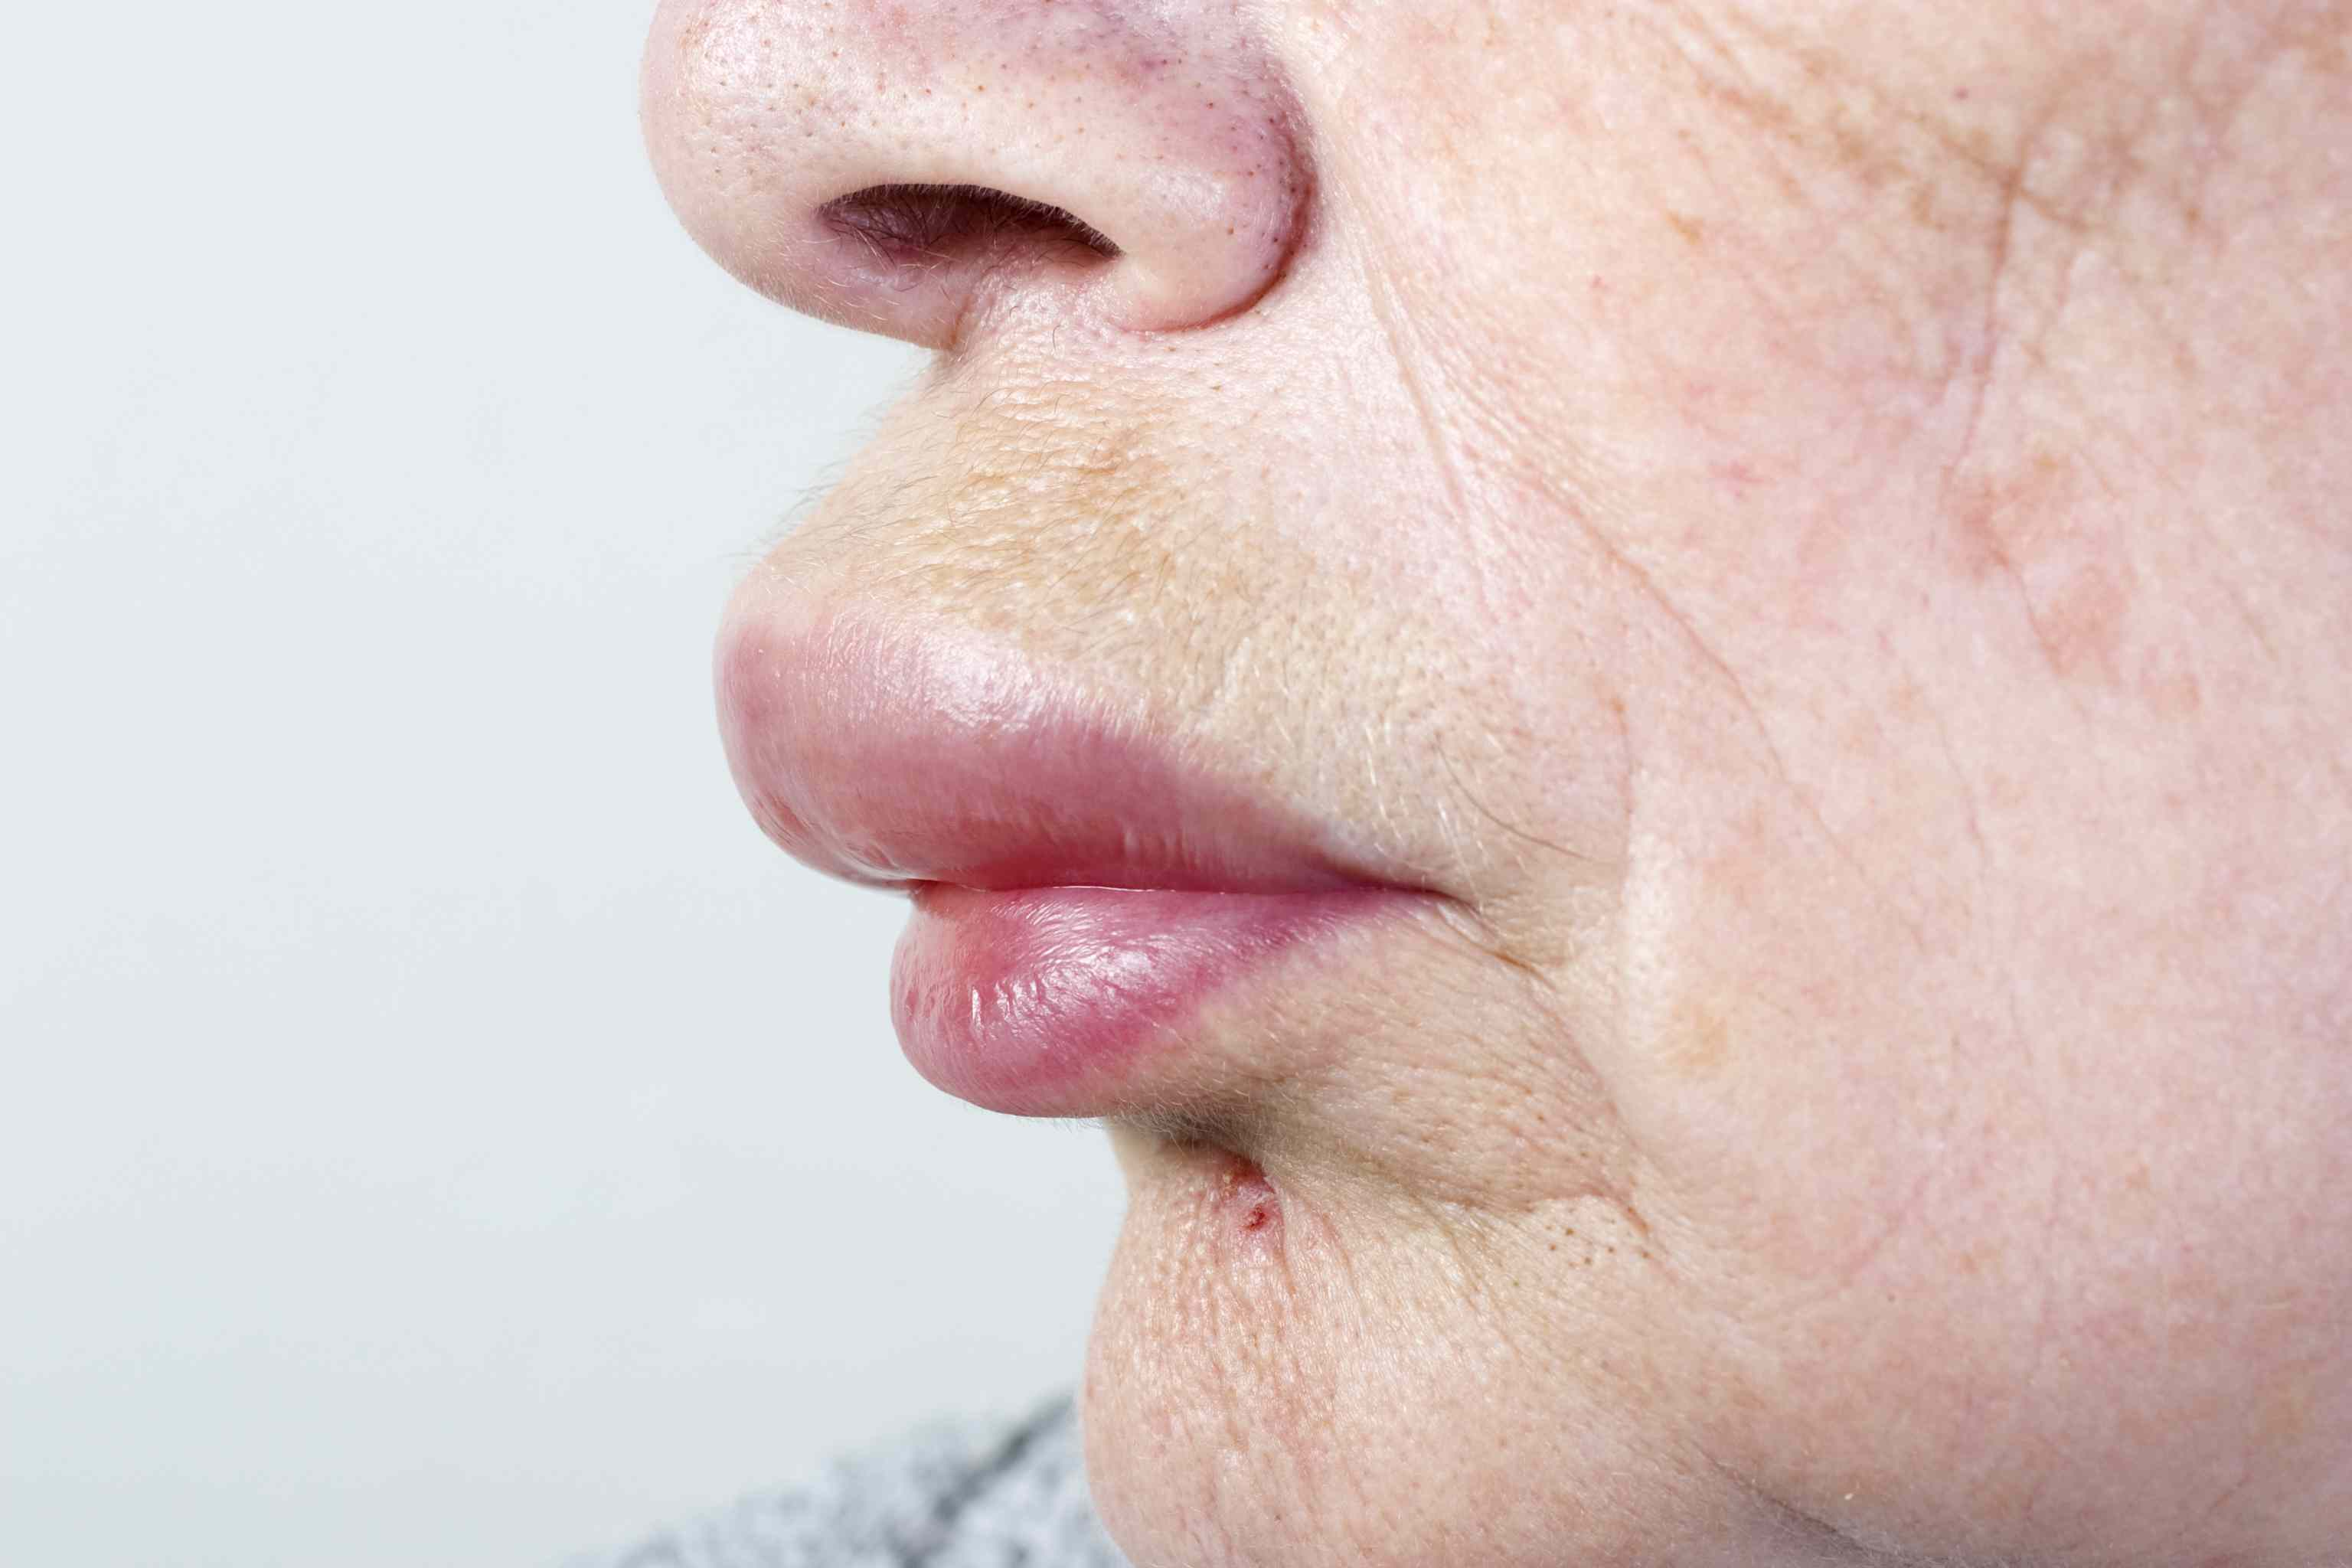 woman with a swollen lip having an allergic reaction